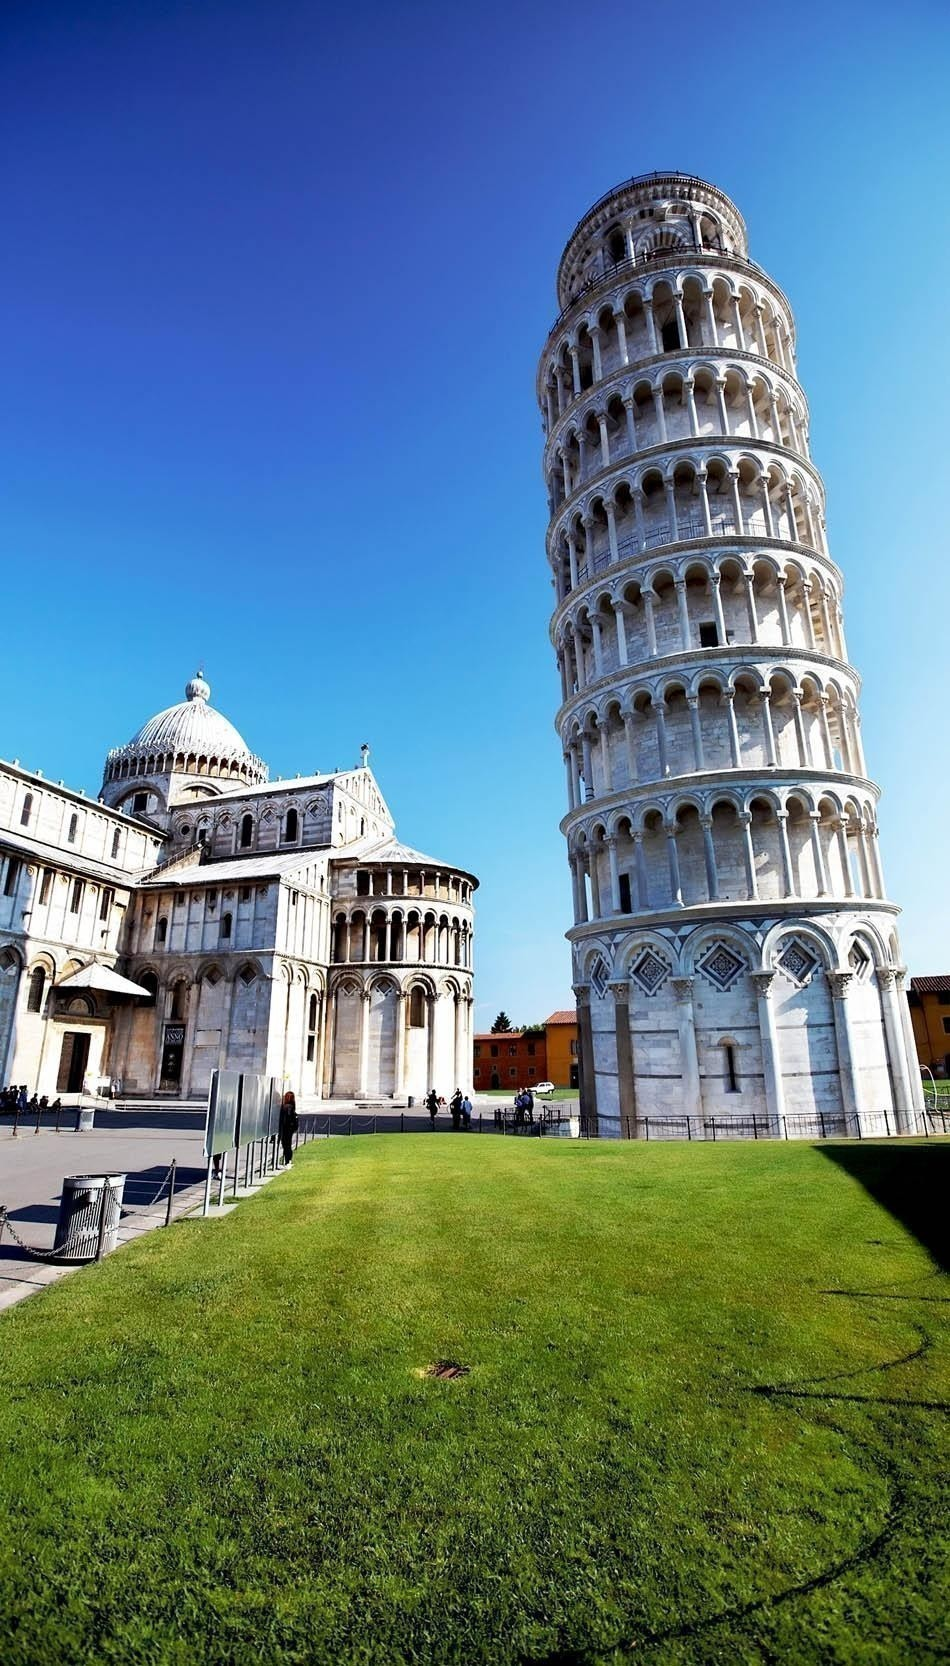 The Famous Leaning Tower, Pisa | Italy Travel Guide